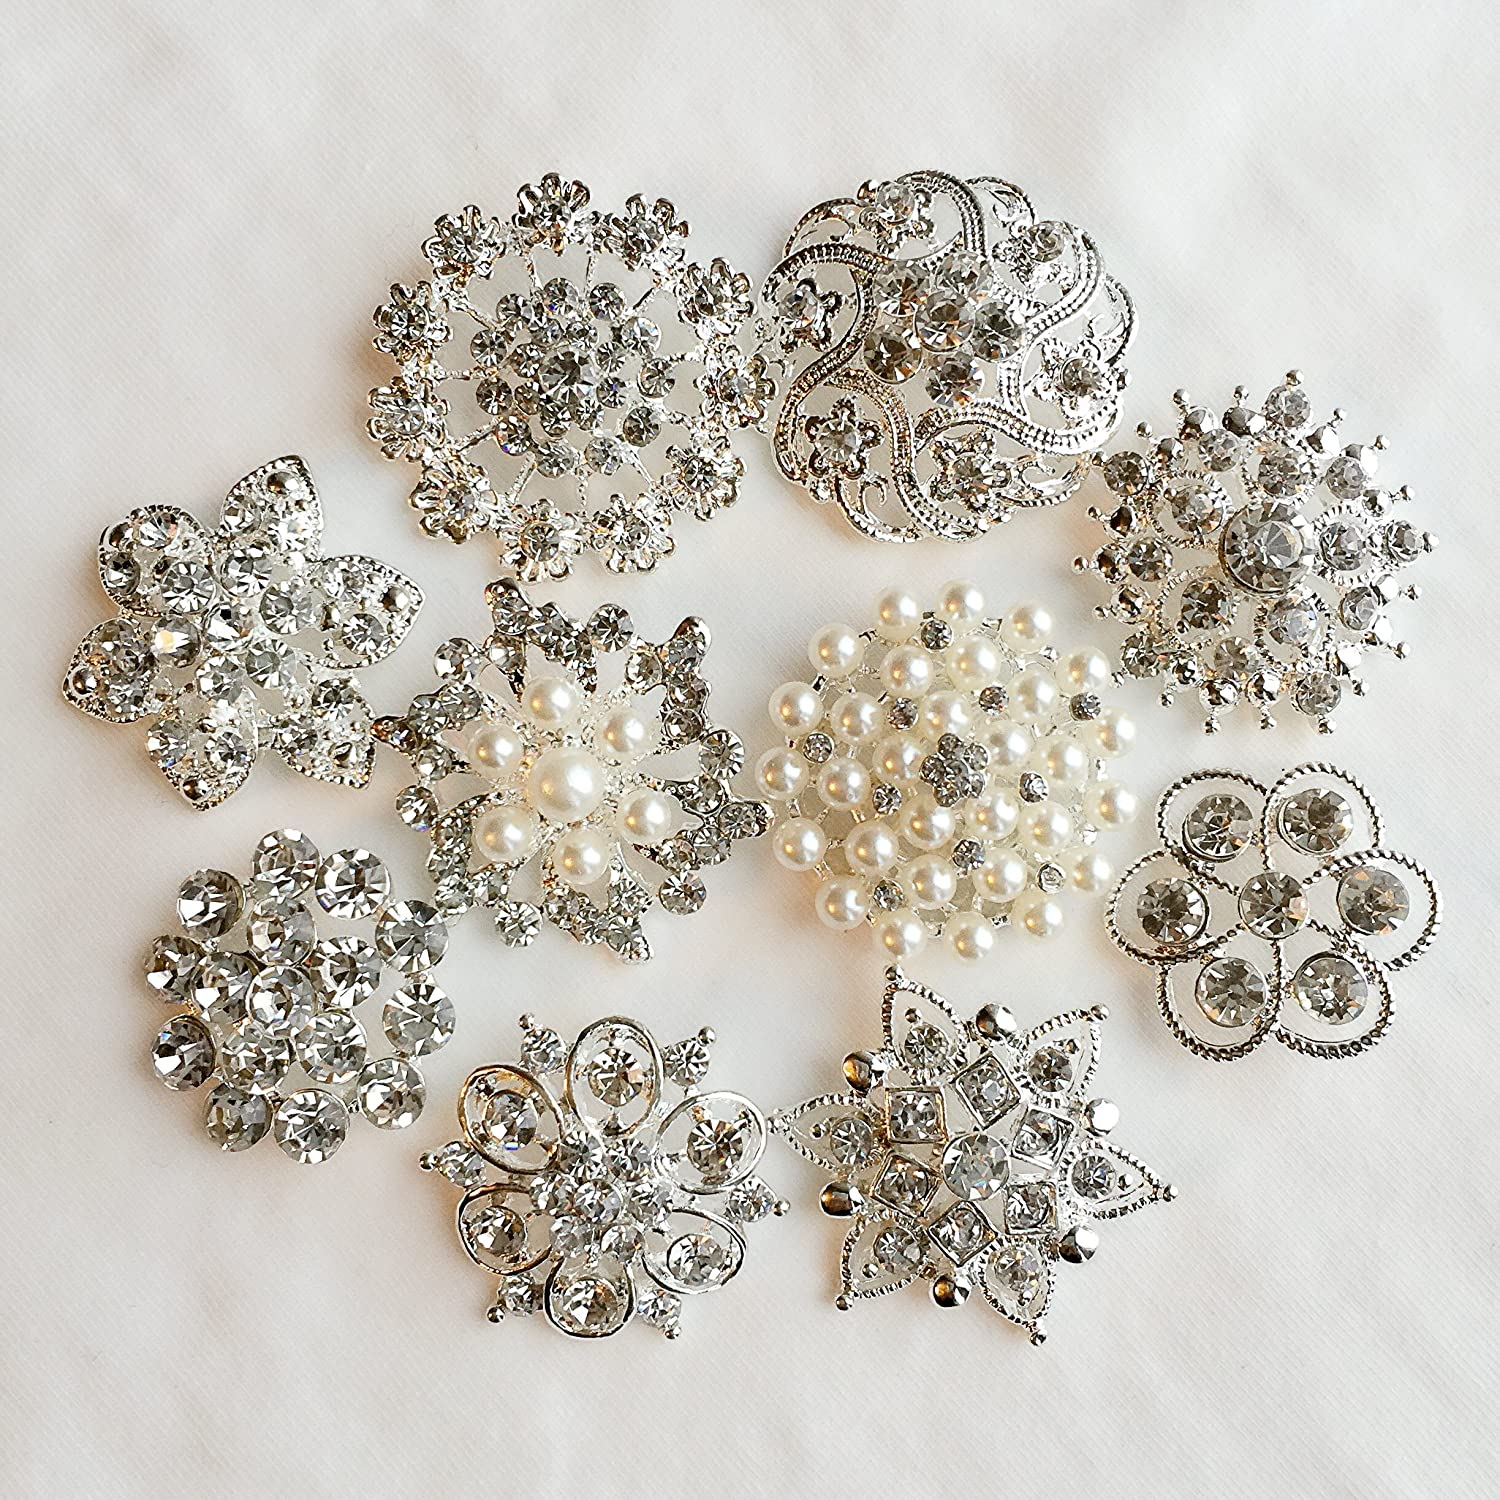 10 Pieces Large Oval Pearls Rhinestones Silver metal Buttons Bridal Accessory.